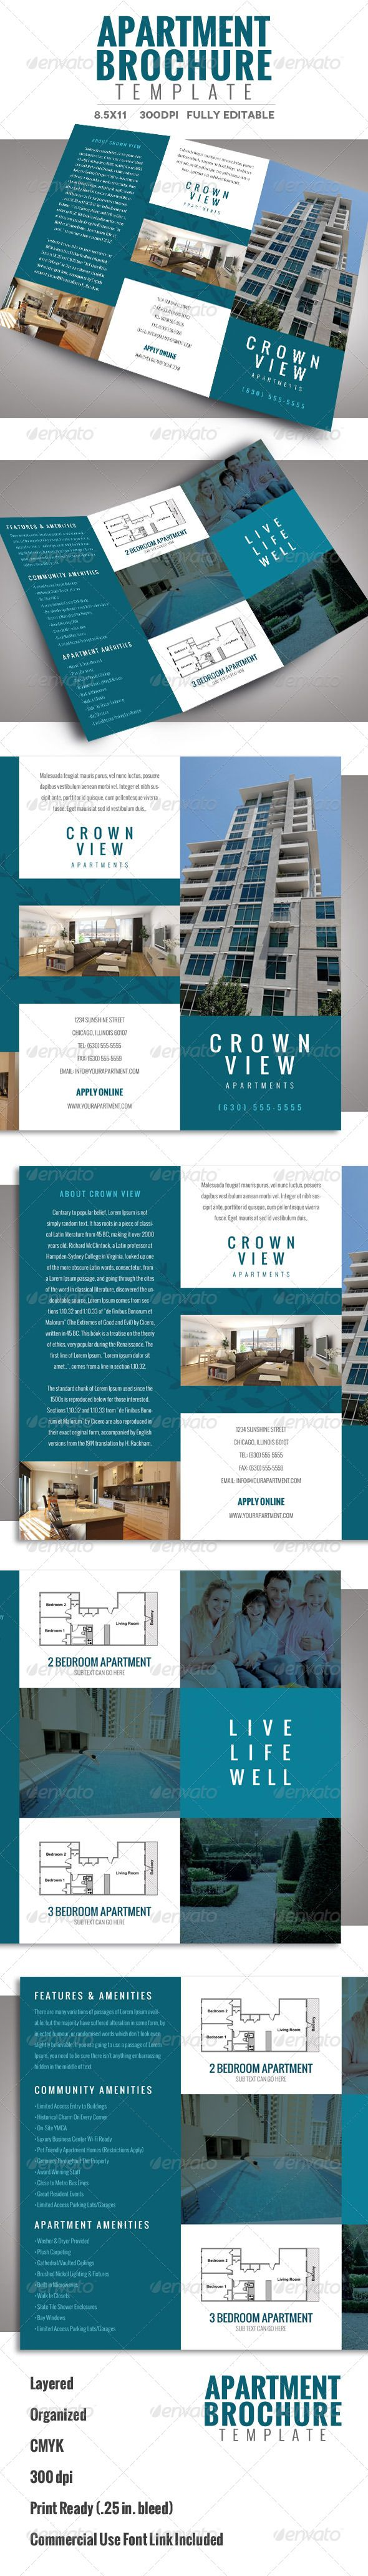 apartment brochure templates - 1000 images about flyer on pinterest the flyer real